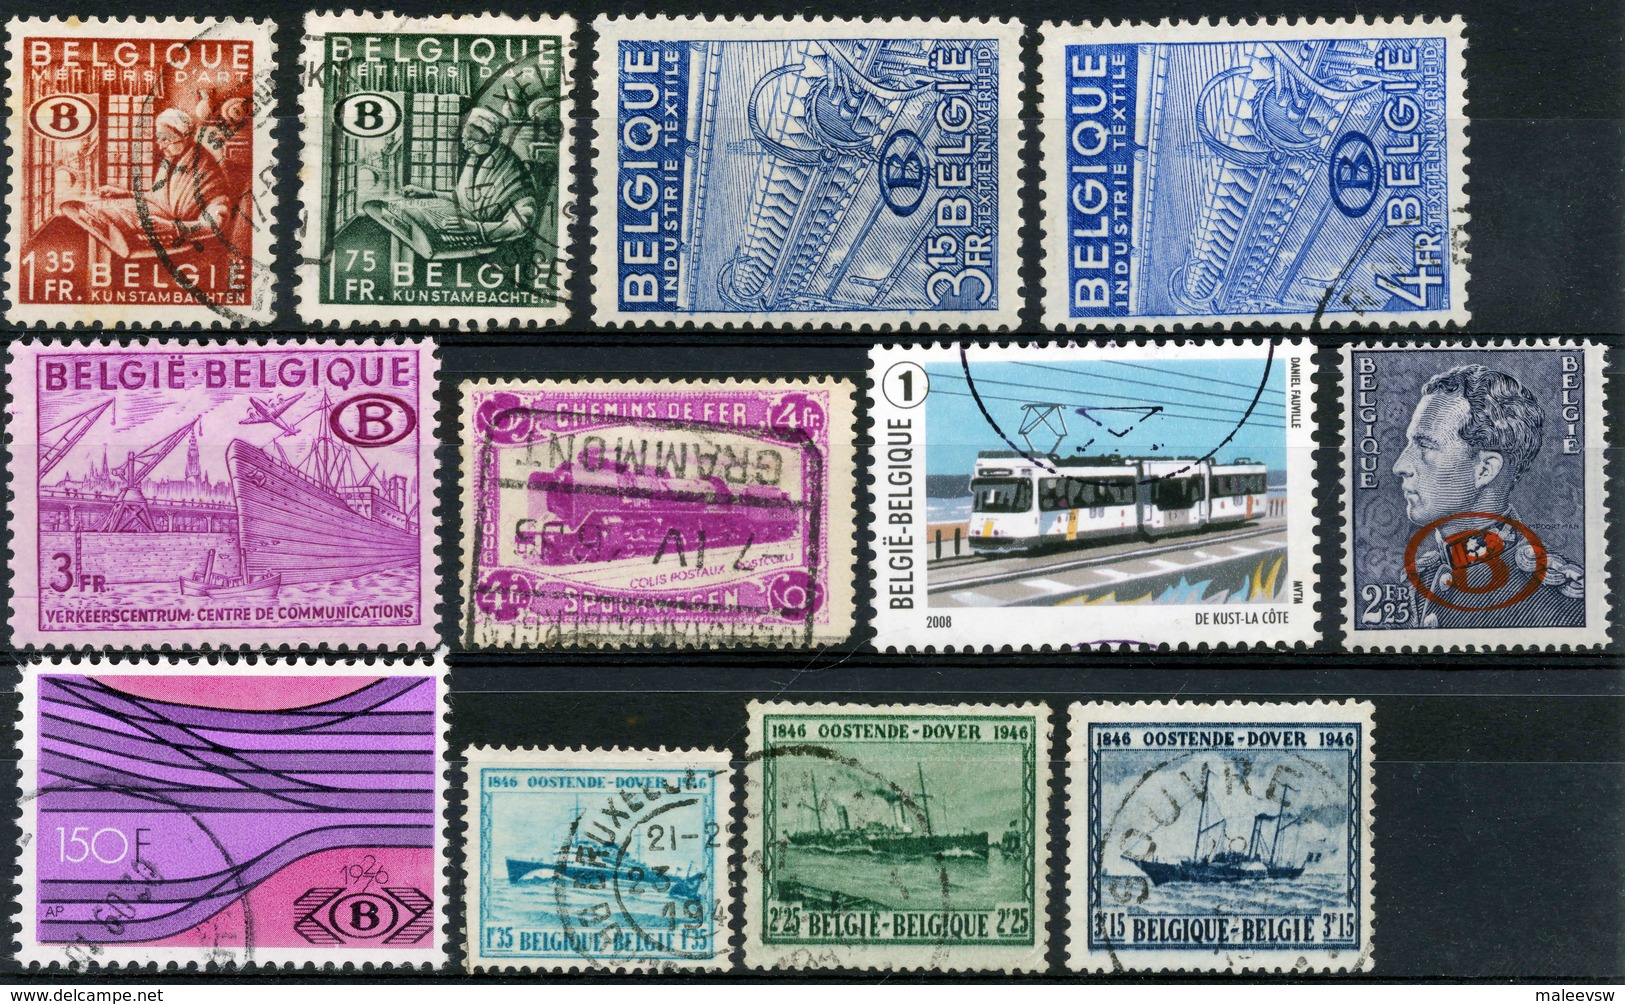 Belgium Has Many Interesting Postage Stamps - Timbres